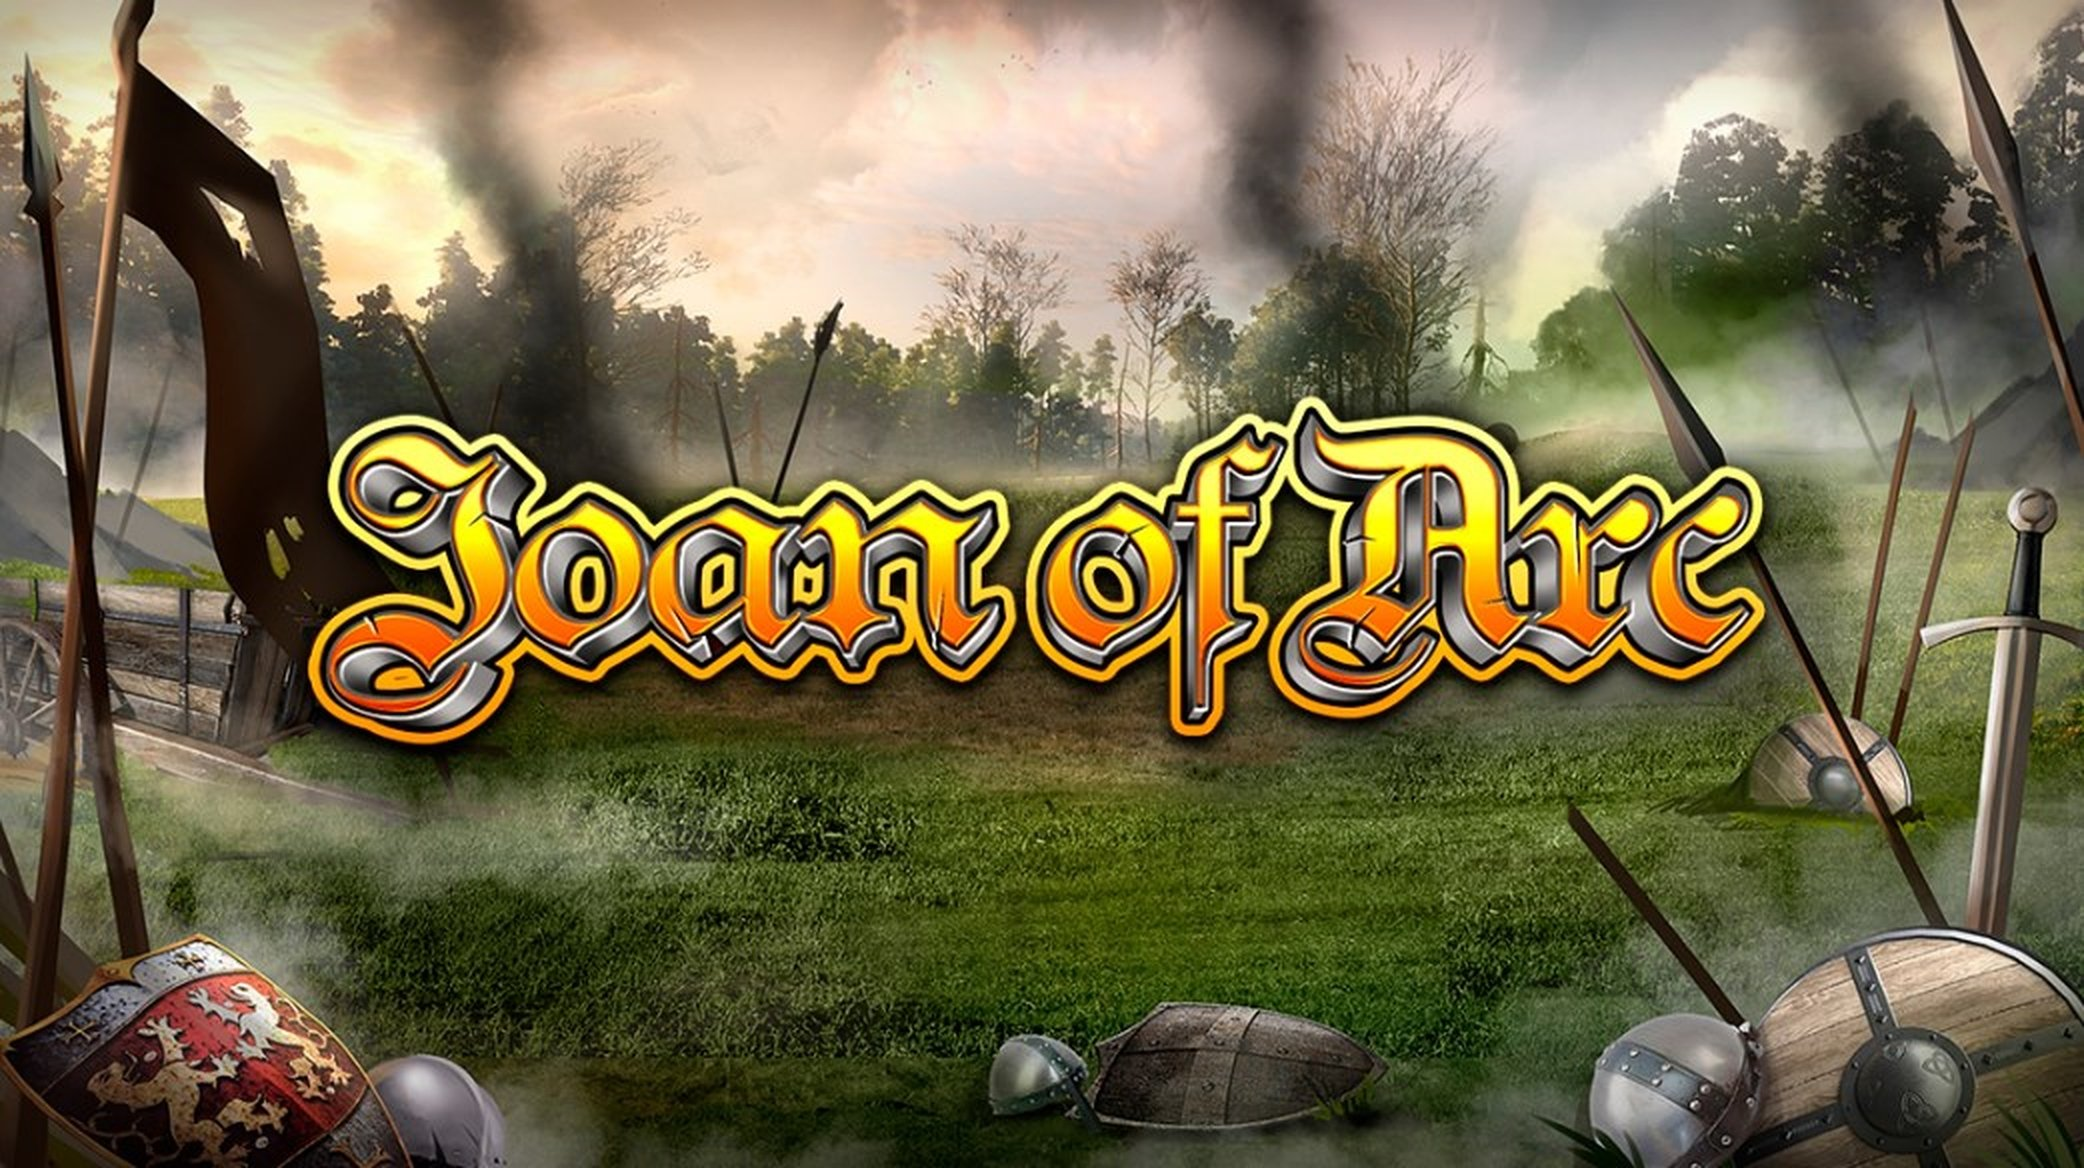 Joan of Arc (GameArt) Online Slot Demo Game by GameArt